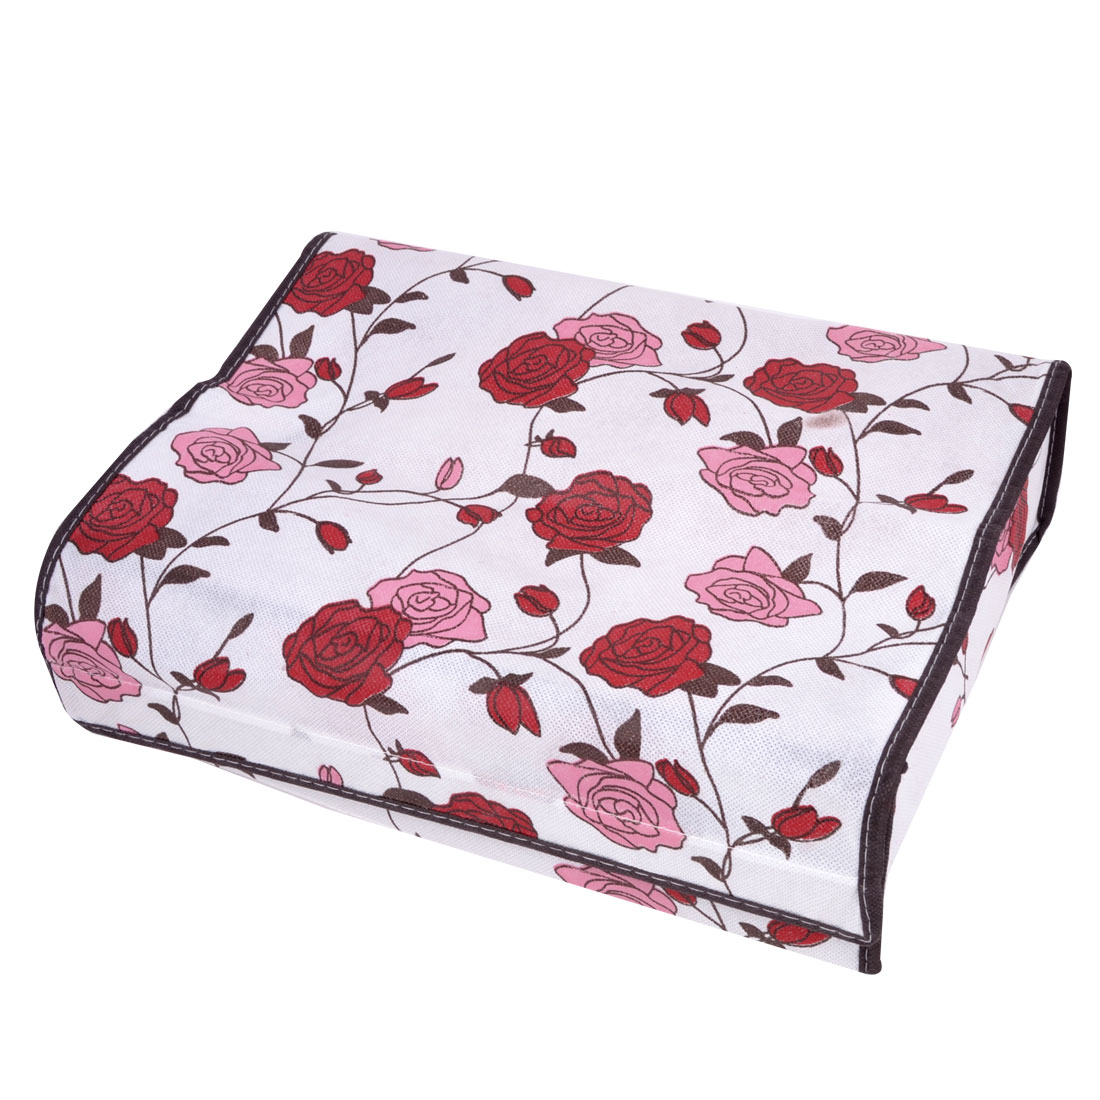 Portable Rose Pattern Card Board Unfoldable Storage Box Container White Red Pink